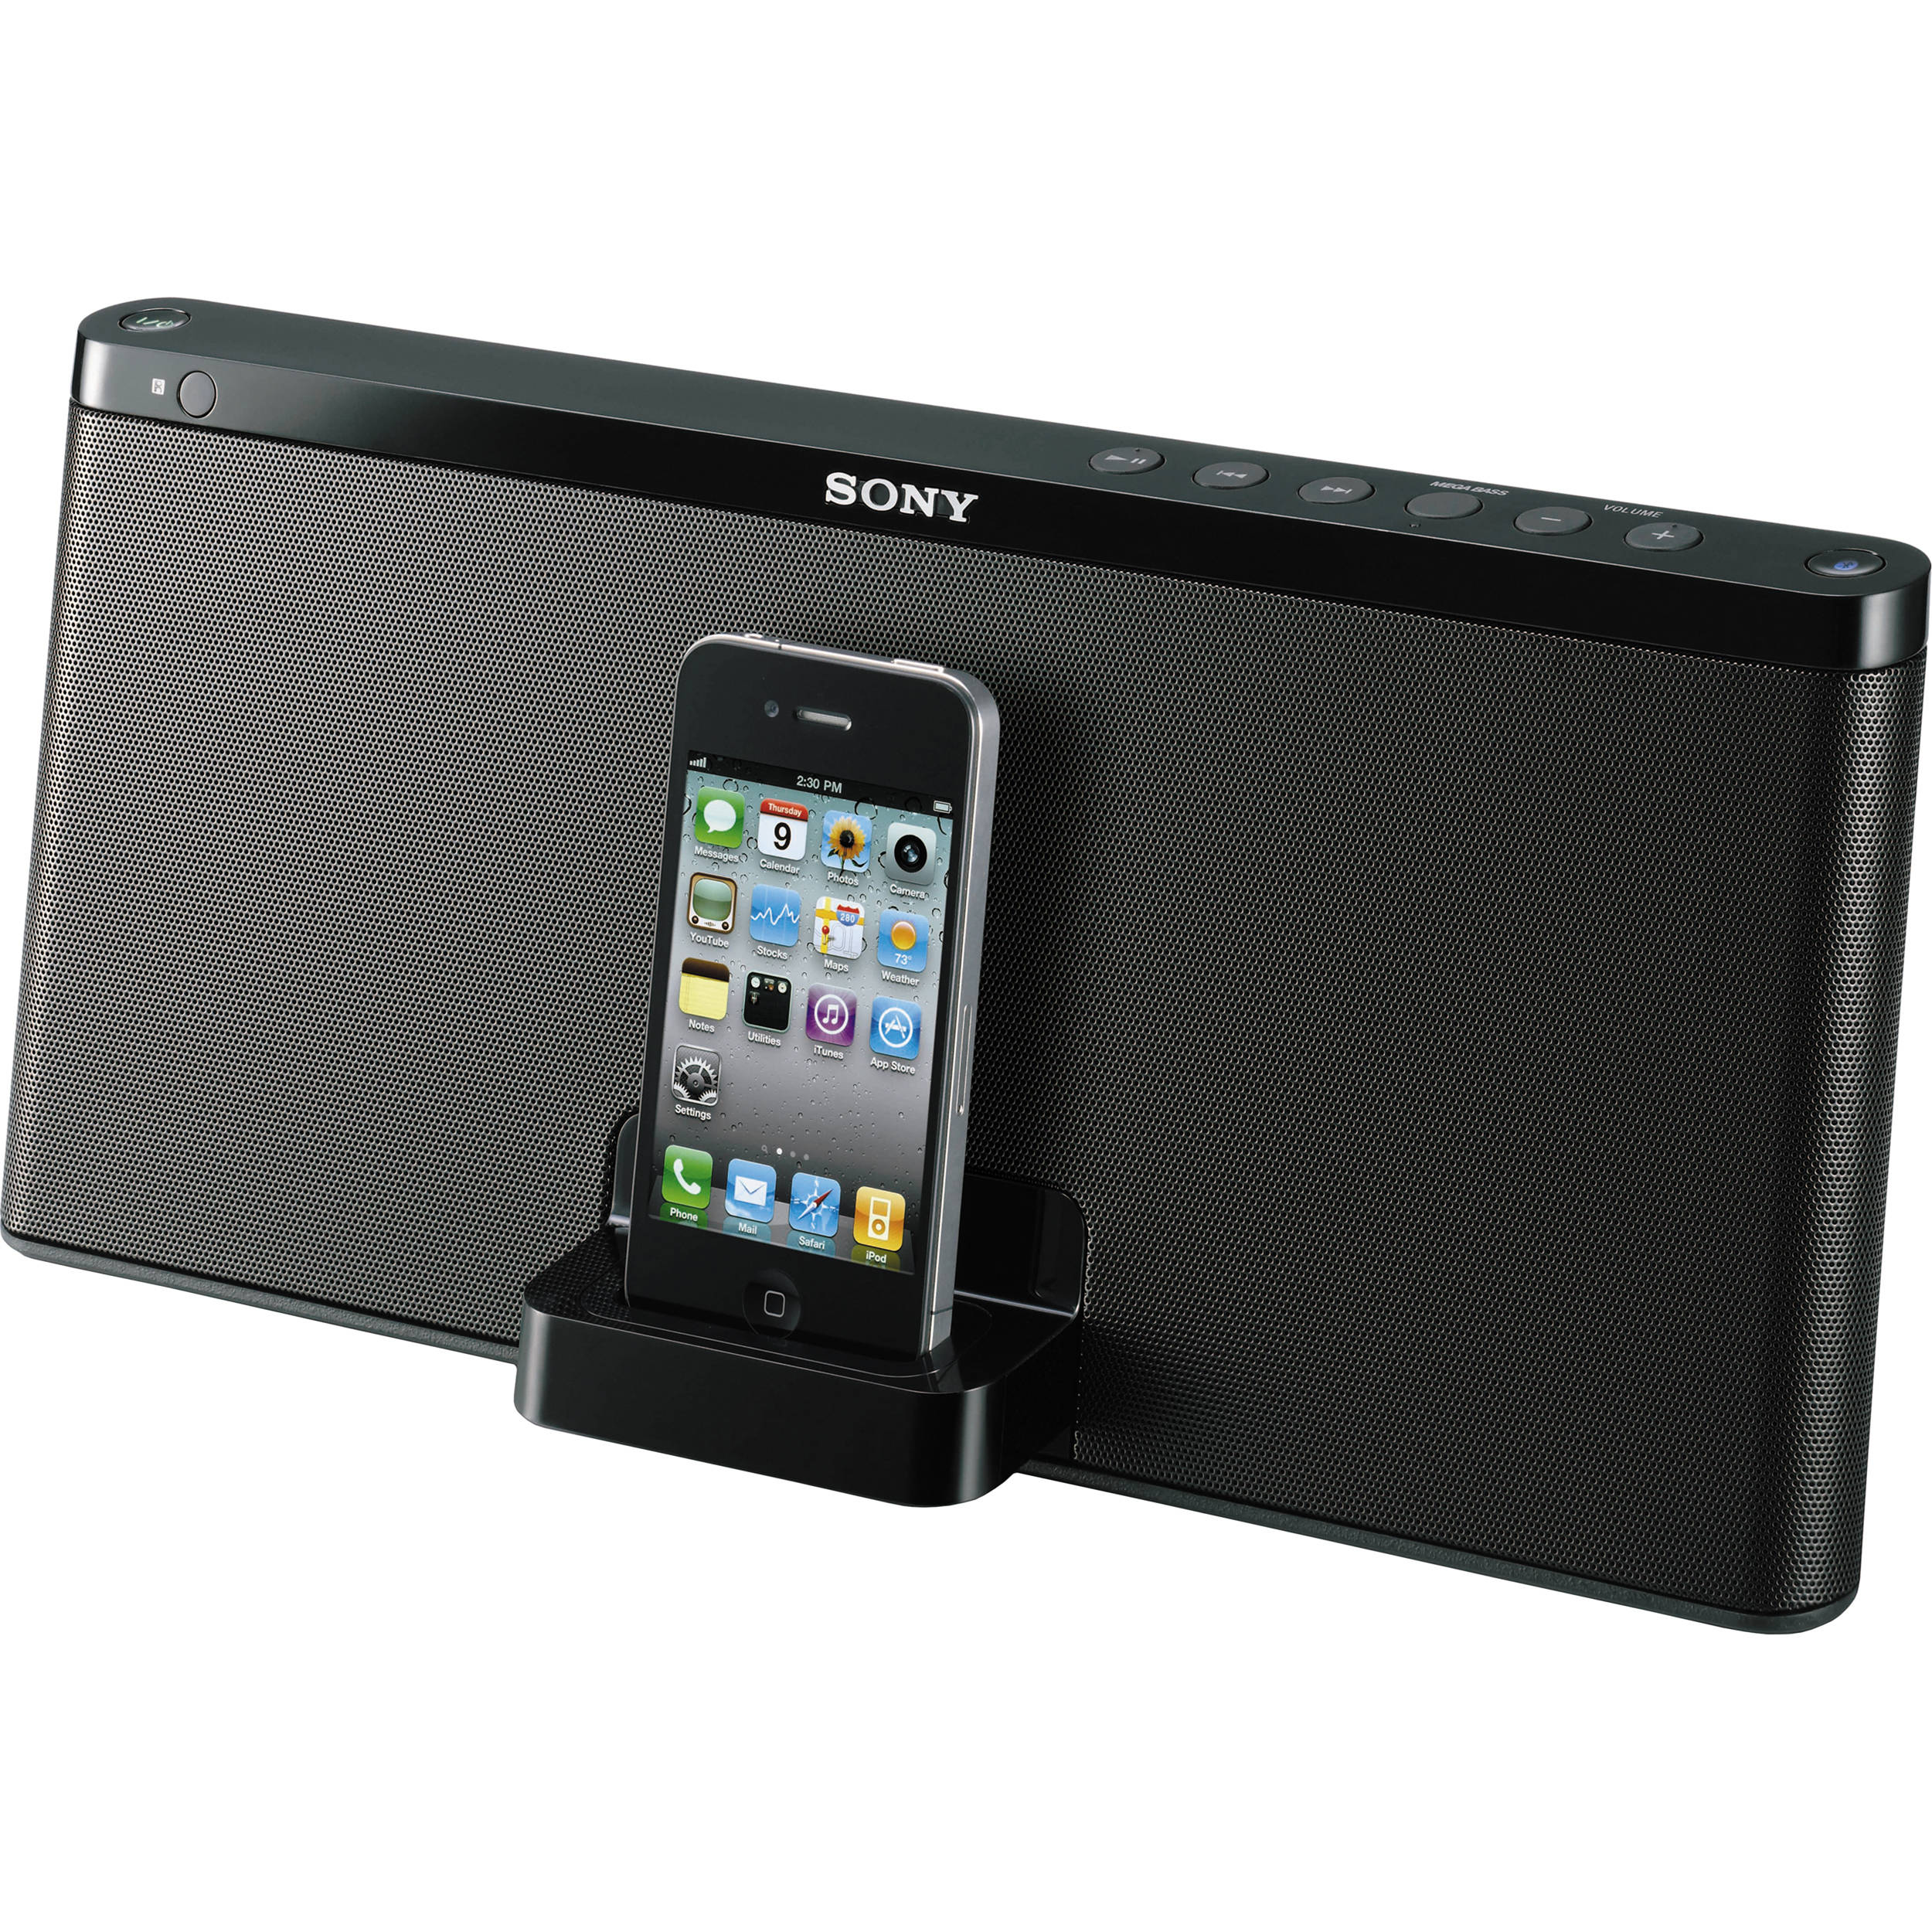 Sony RDP-X60iP IPod + IPhone Bluetooth Speaker Dock RDP-X60IP